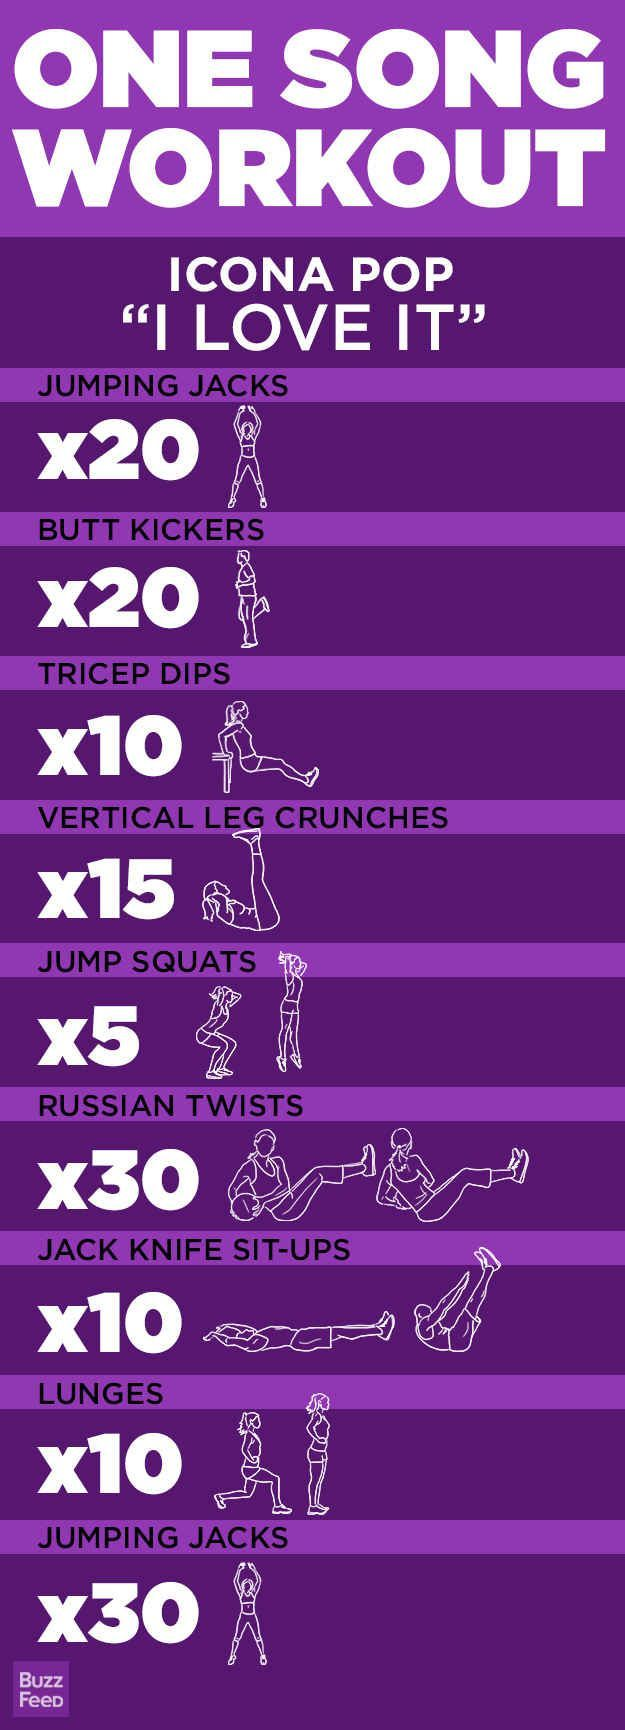 5 One-Song Workouts, just want to try to see if the workout goes with the song, cause that'd be pretty neat!